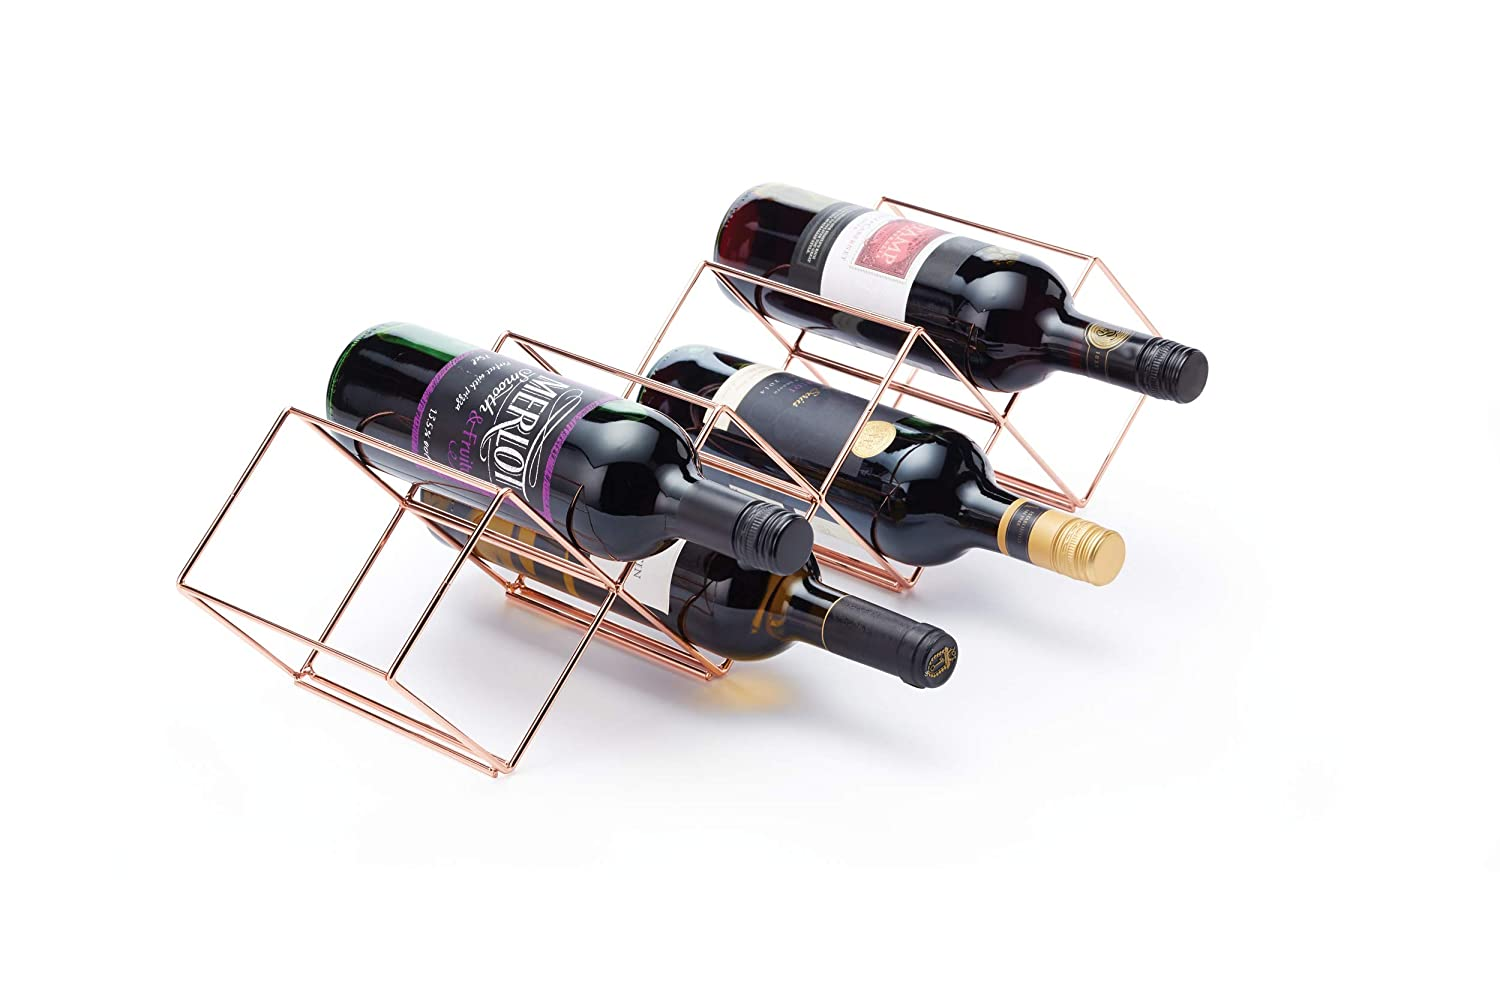 Kitchen Craft Wine Rack - Copper Finish - Stackable - Holds up to 7 Bottles 58 x 14.5 x 14.5cm